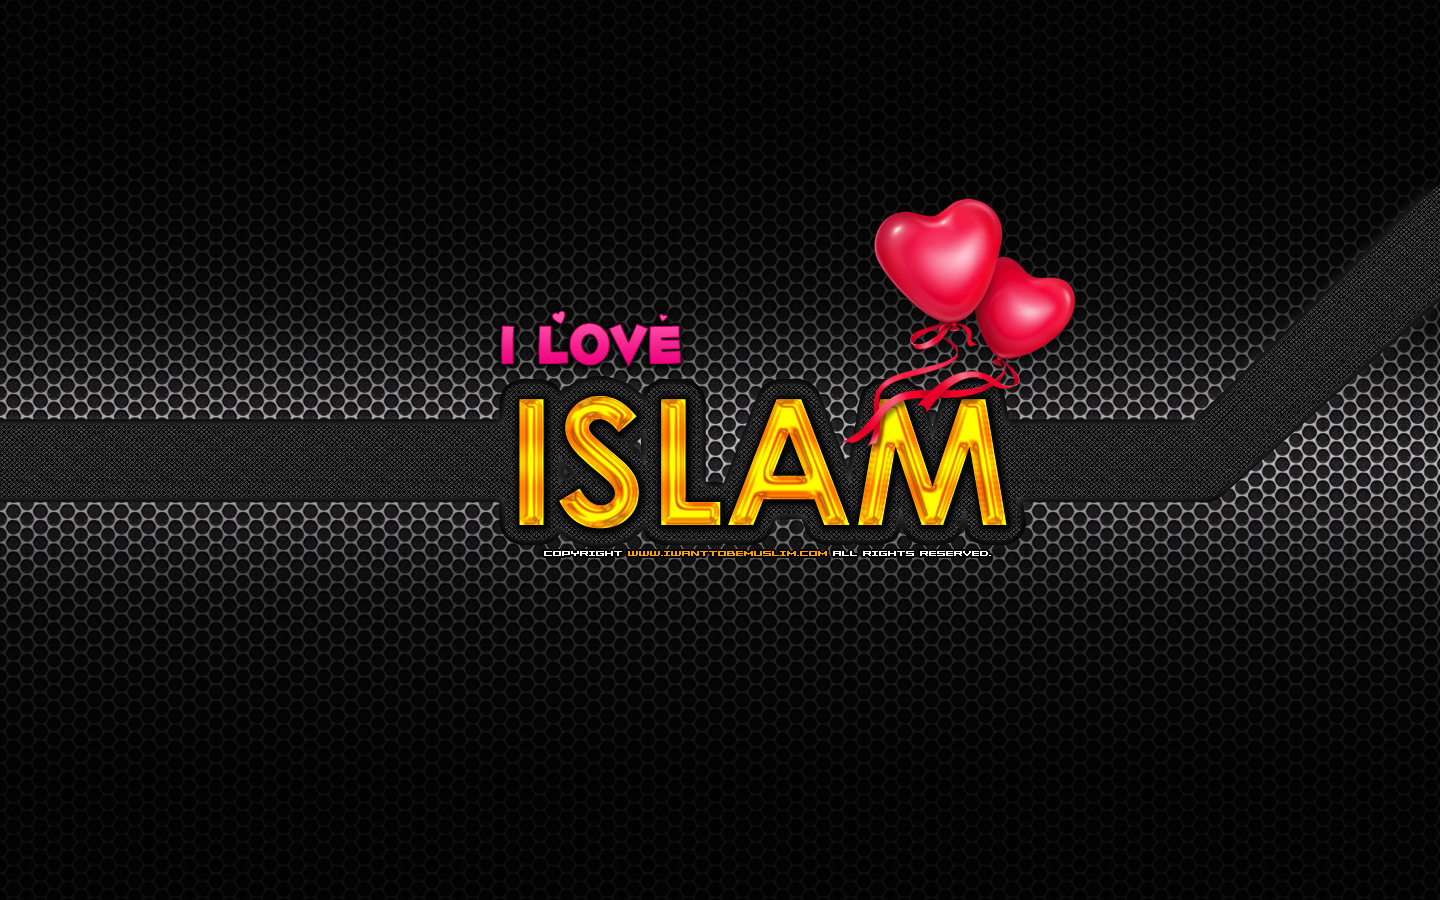 http://3.bp.blogspot.com/-HGD-XilbfM8/UNk2IfJPisI/AAAAAAAANDo/rTzxM_5Kjh8/s1600/hd_islamic_wallpaper_by_i_want_to_be_muslim-d3hxziv.jpg